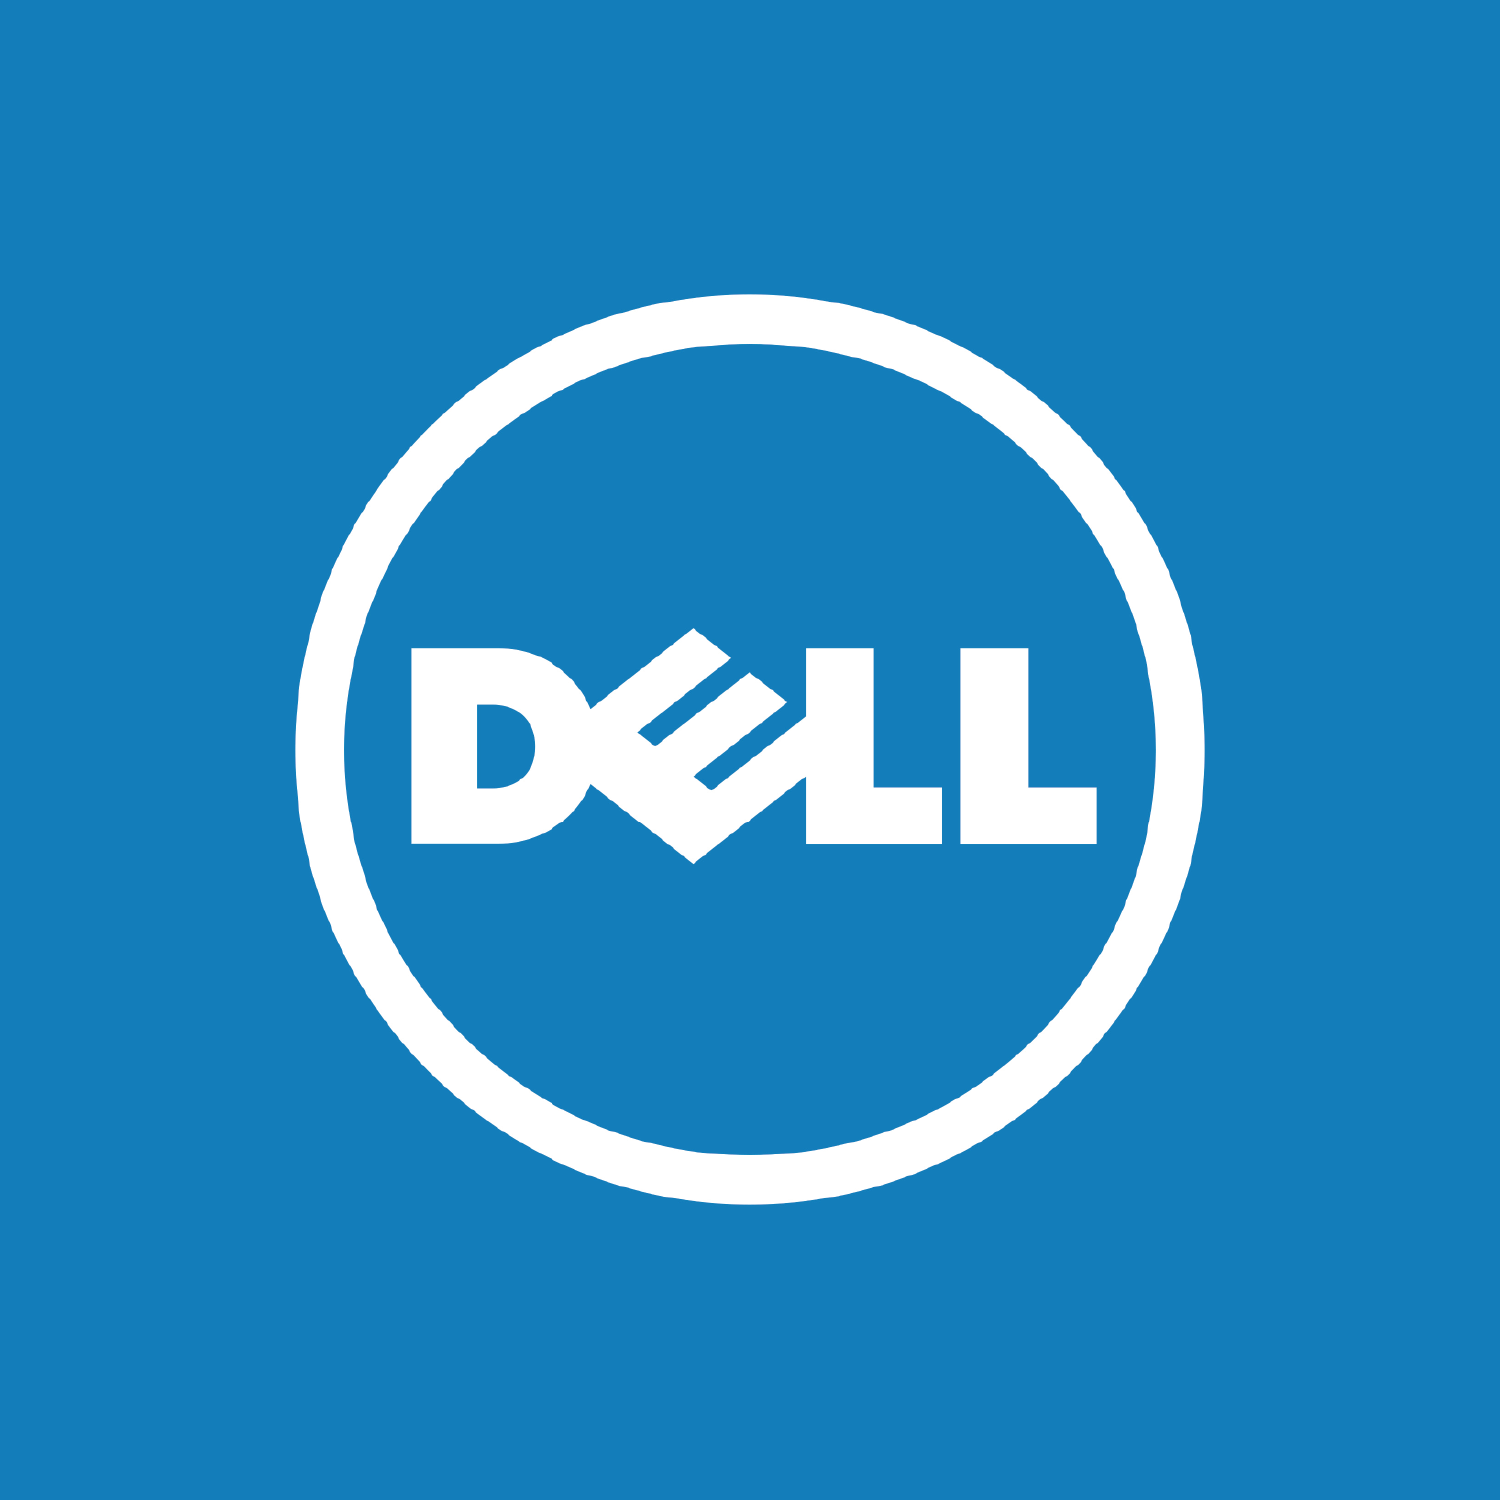 dell-01.png